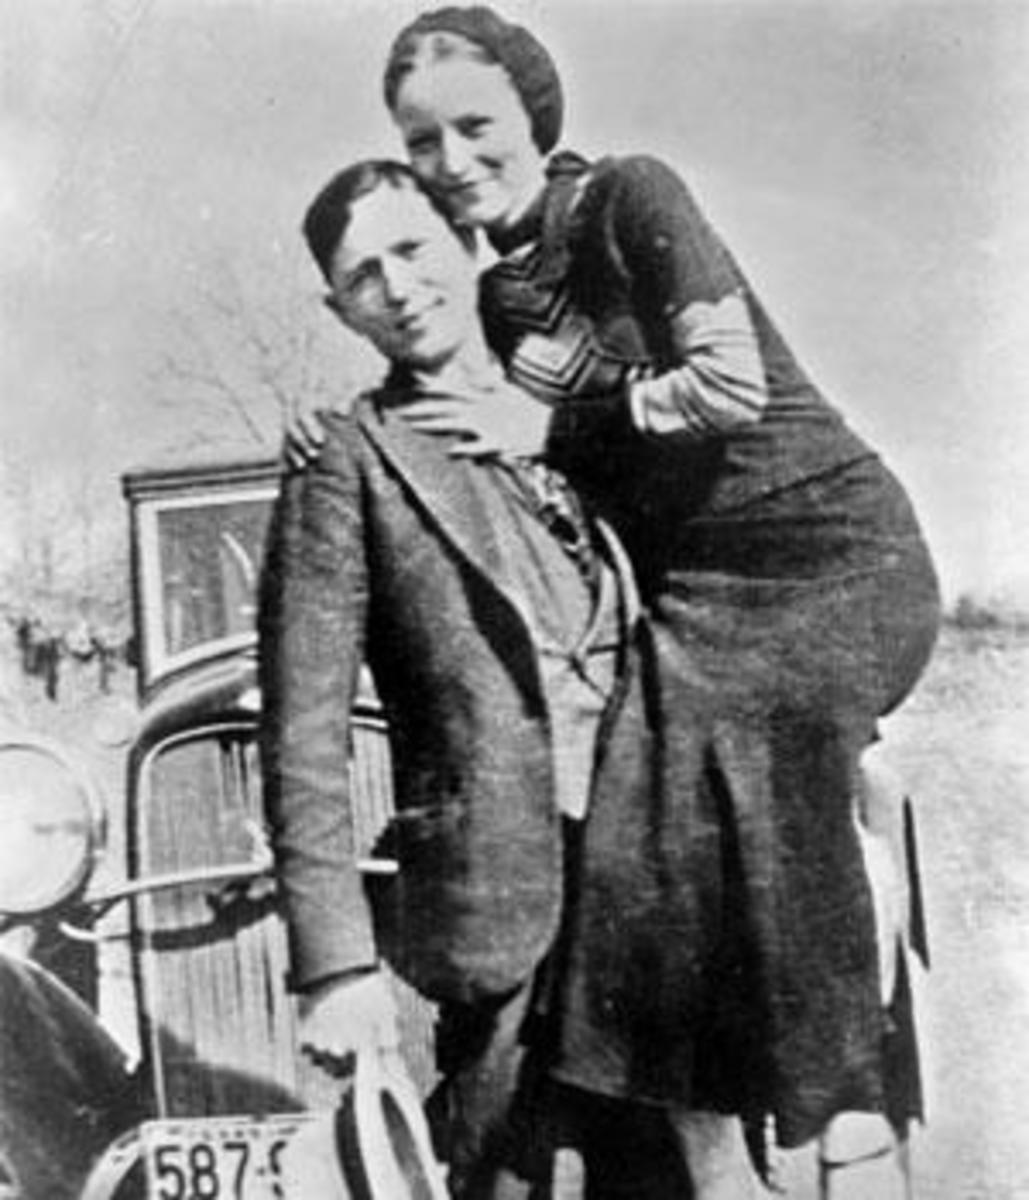 Bonnie Parker and Clyde Barrow in a photograph from the early 1930s. (Library of Congress)